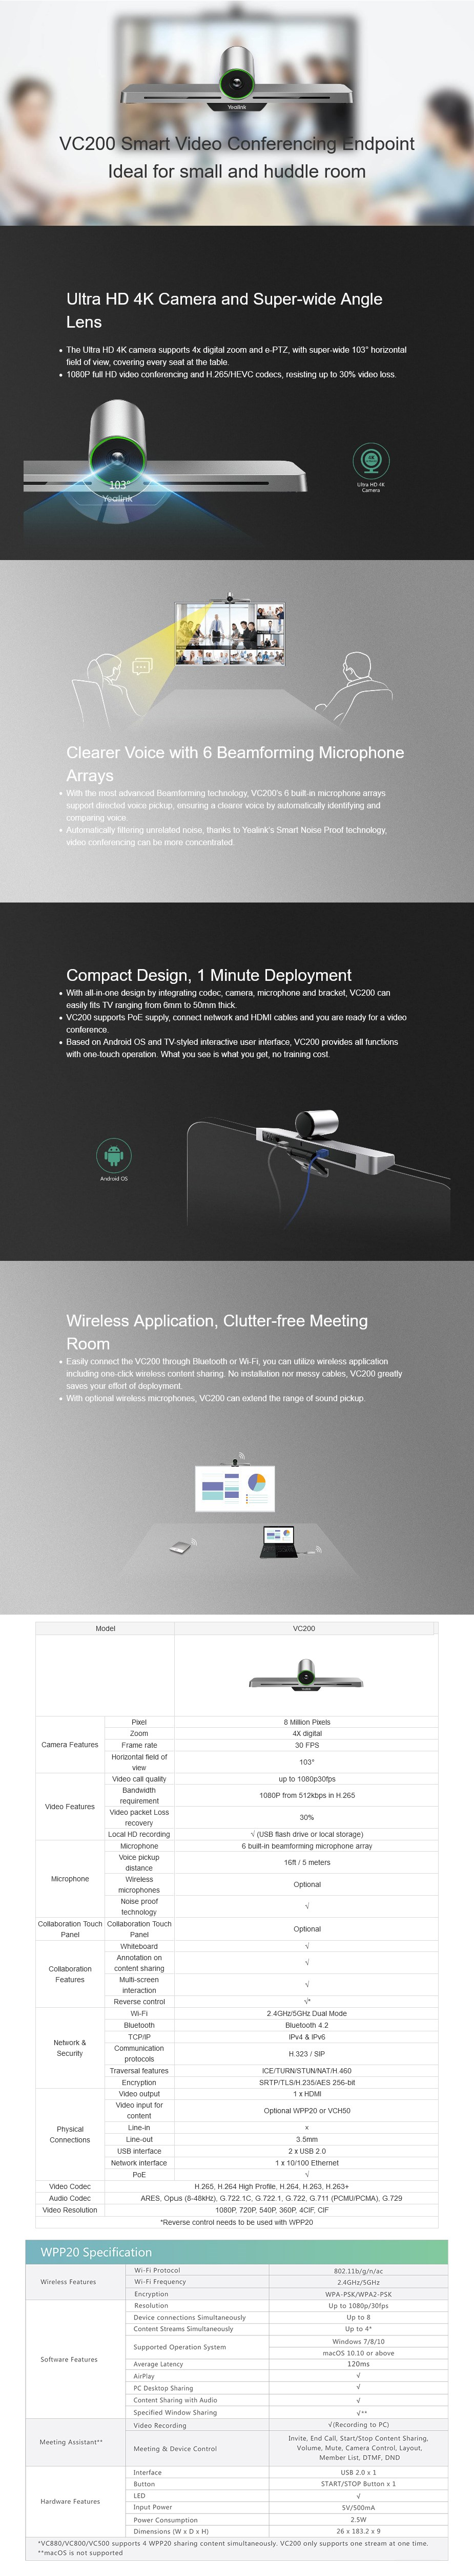 yealink-vc200wp-smart-video-conferencing-system-with-wireless-presentation-pod-ac33602-3.jpg